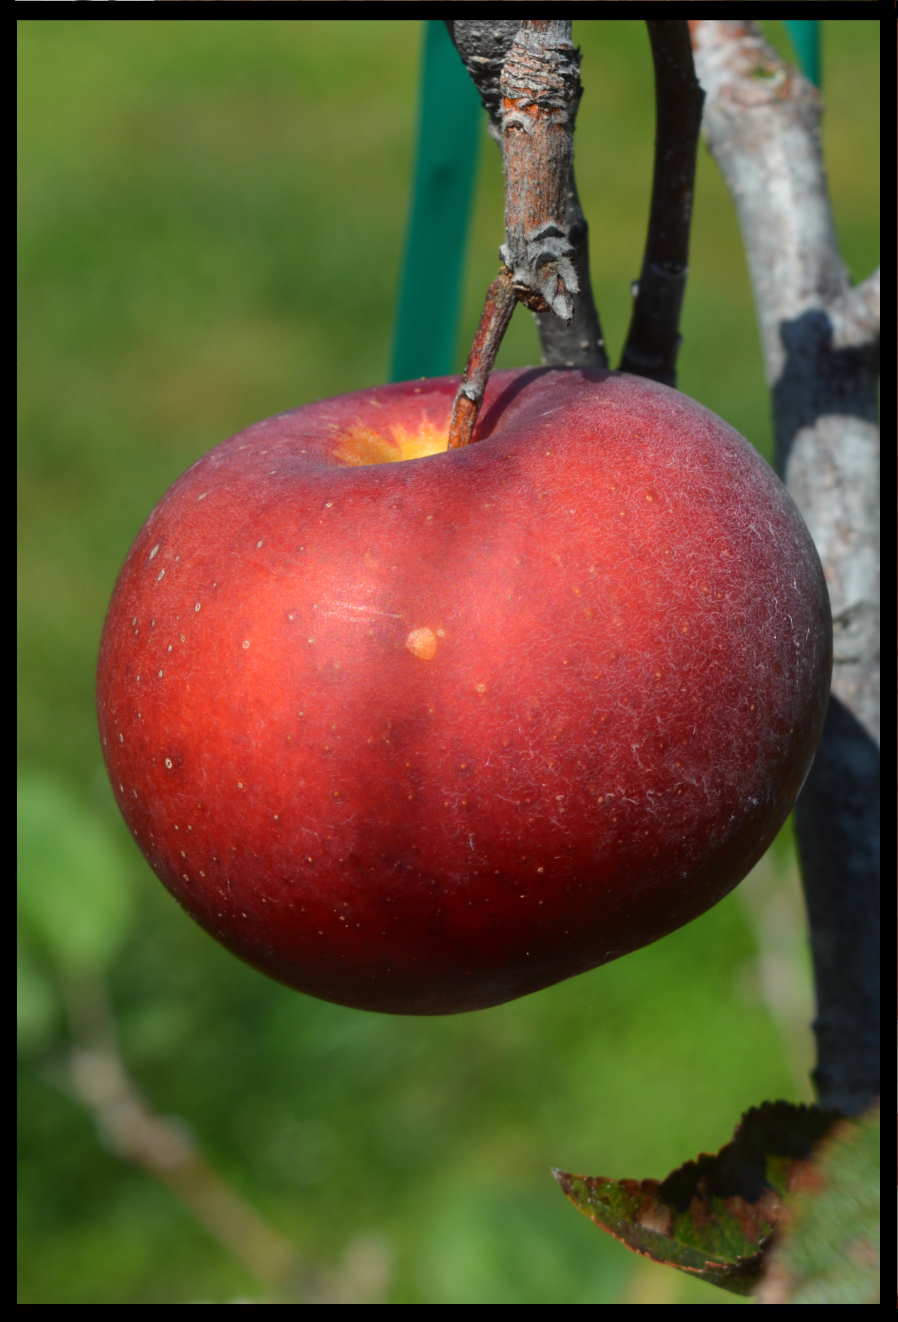 red apple with tiny white dots